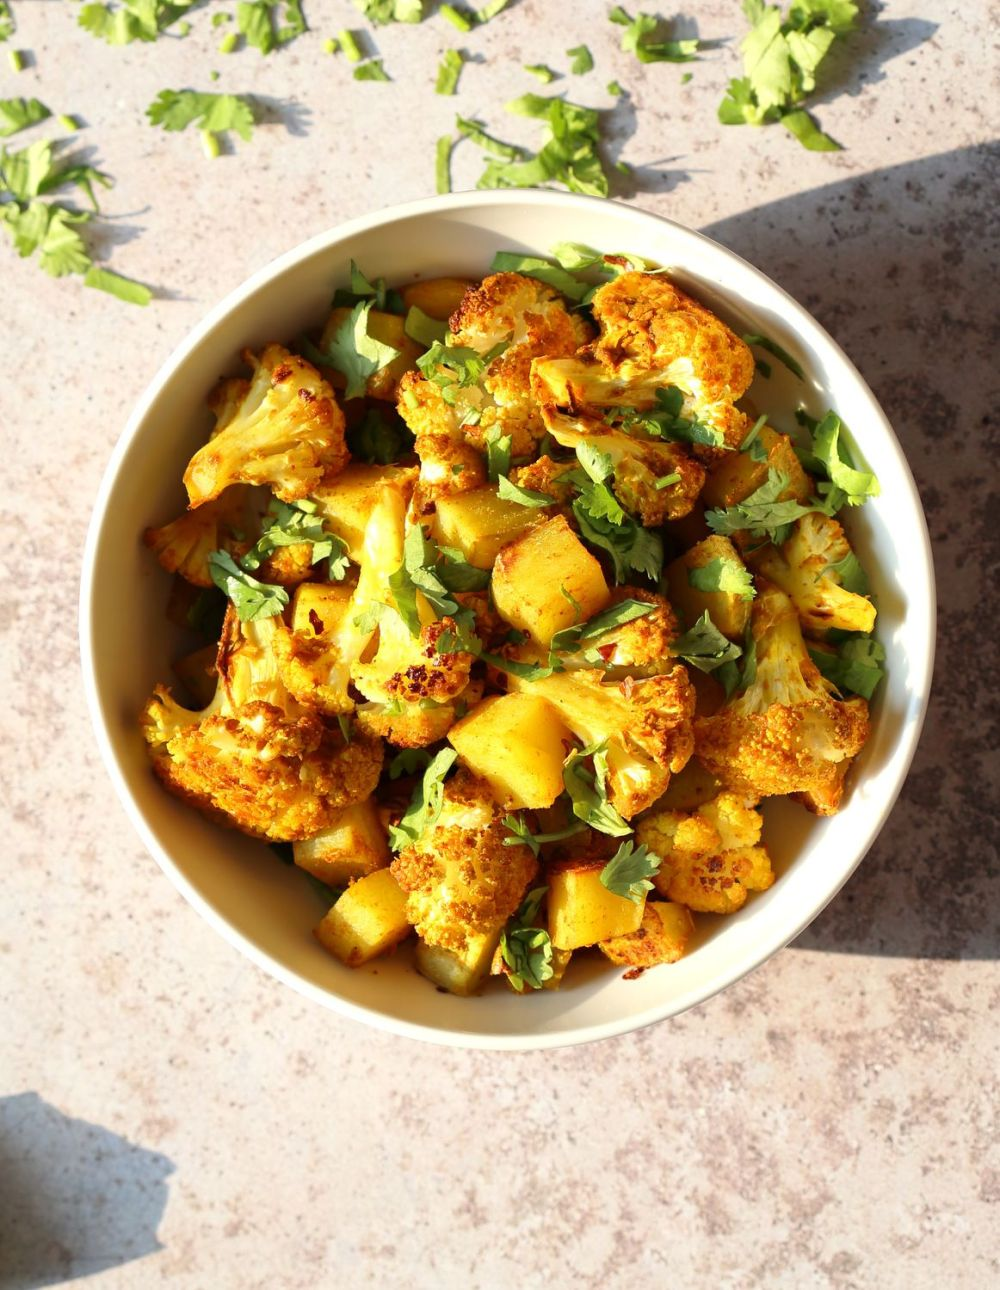 Baked Aloo Gobi - Indian Spiced Potato Cauliflower Side_ Tips for the Best Aloo Gobi Subzi that bakes perfectly every time! Vegan Glutenfree Soyfree Nutfree Recipe